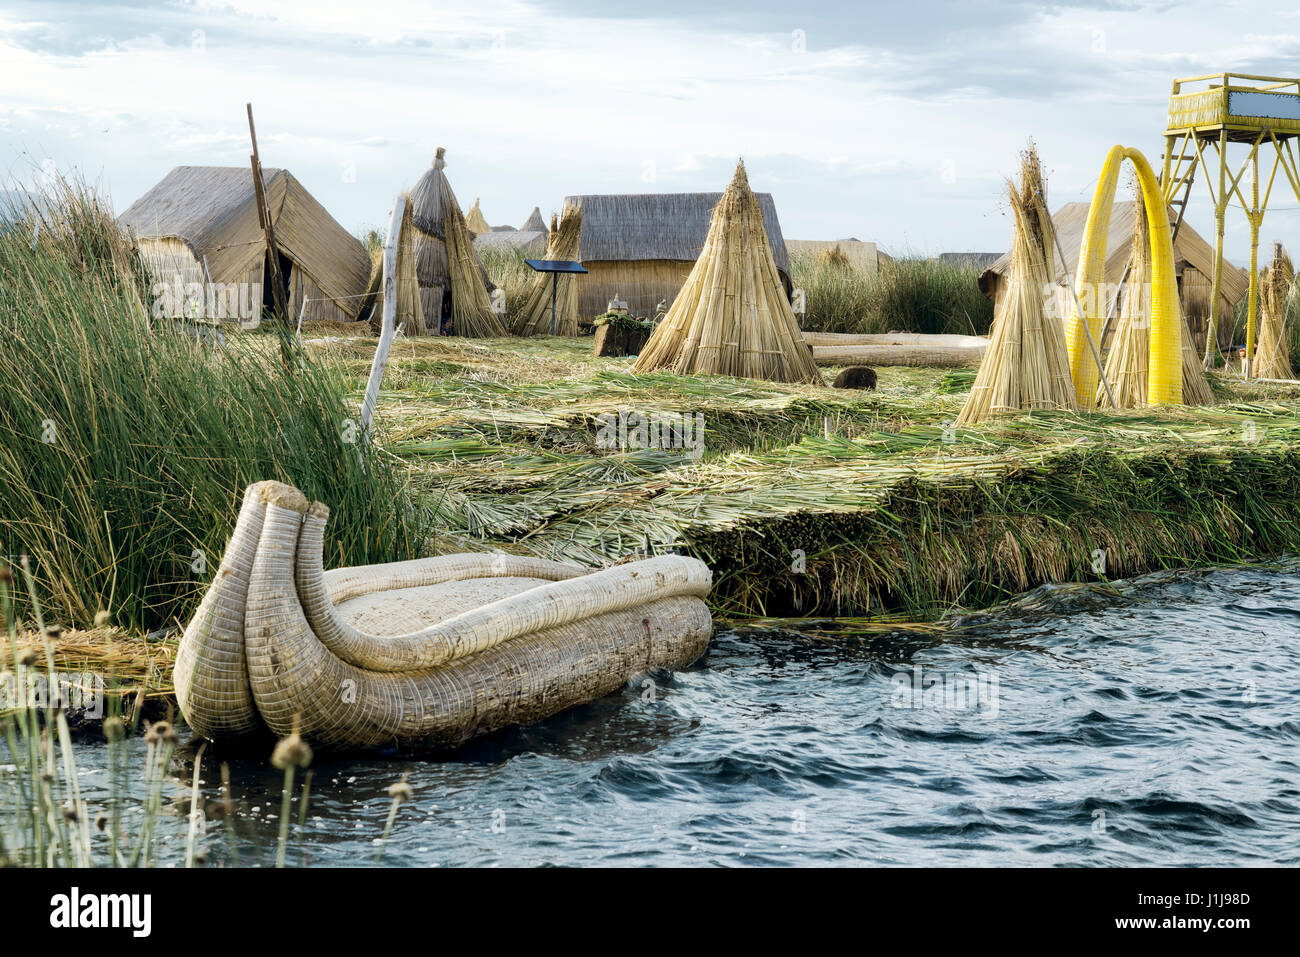 The Uros Floating Islands on Lake Titicaca, Peru - Stock Image